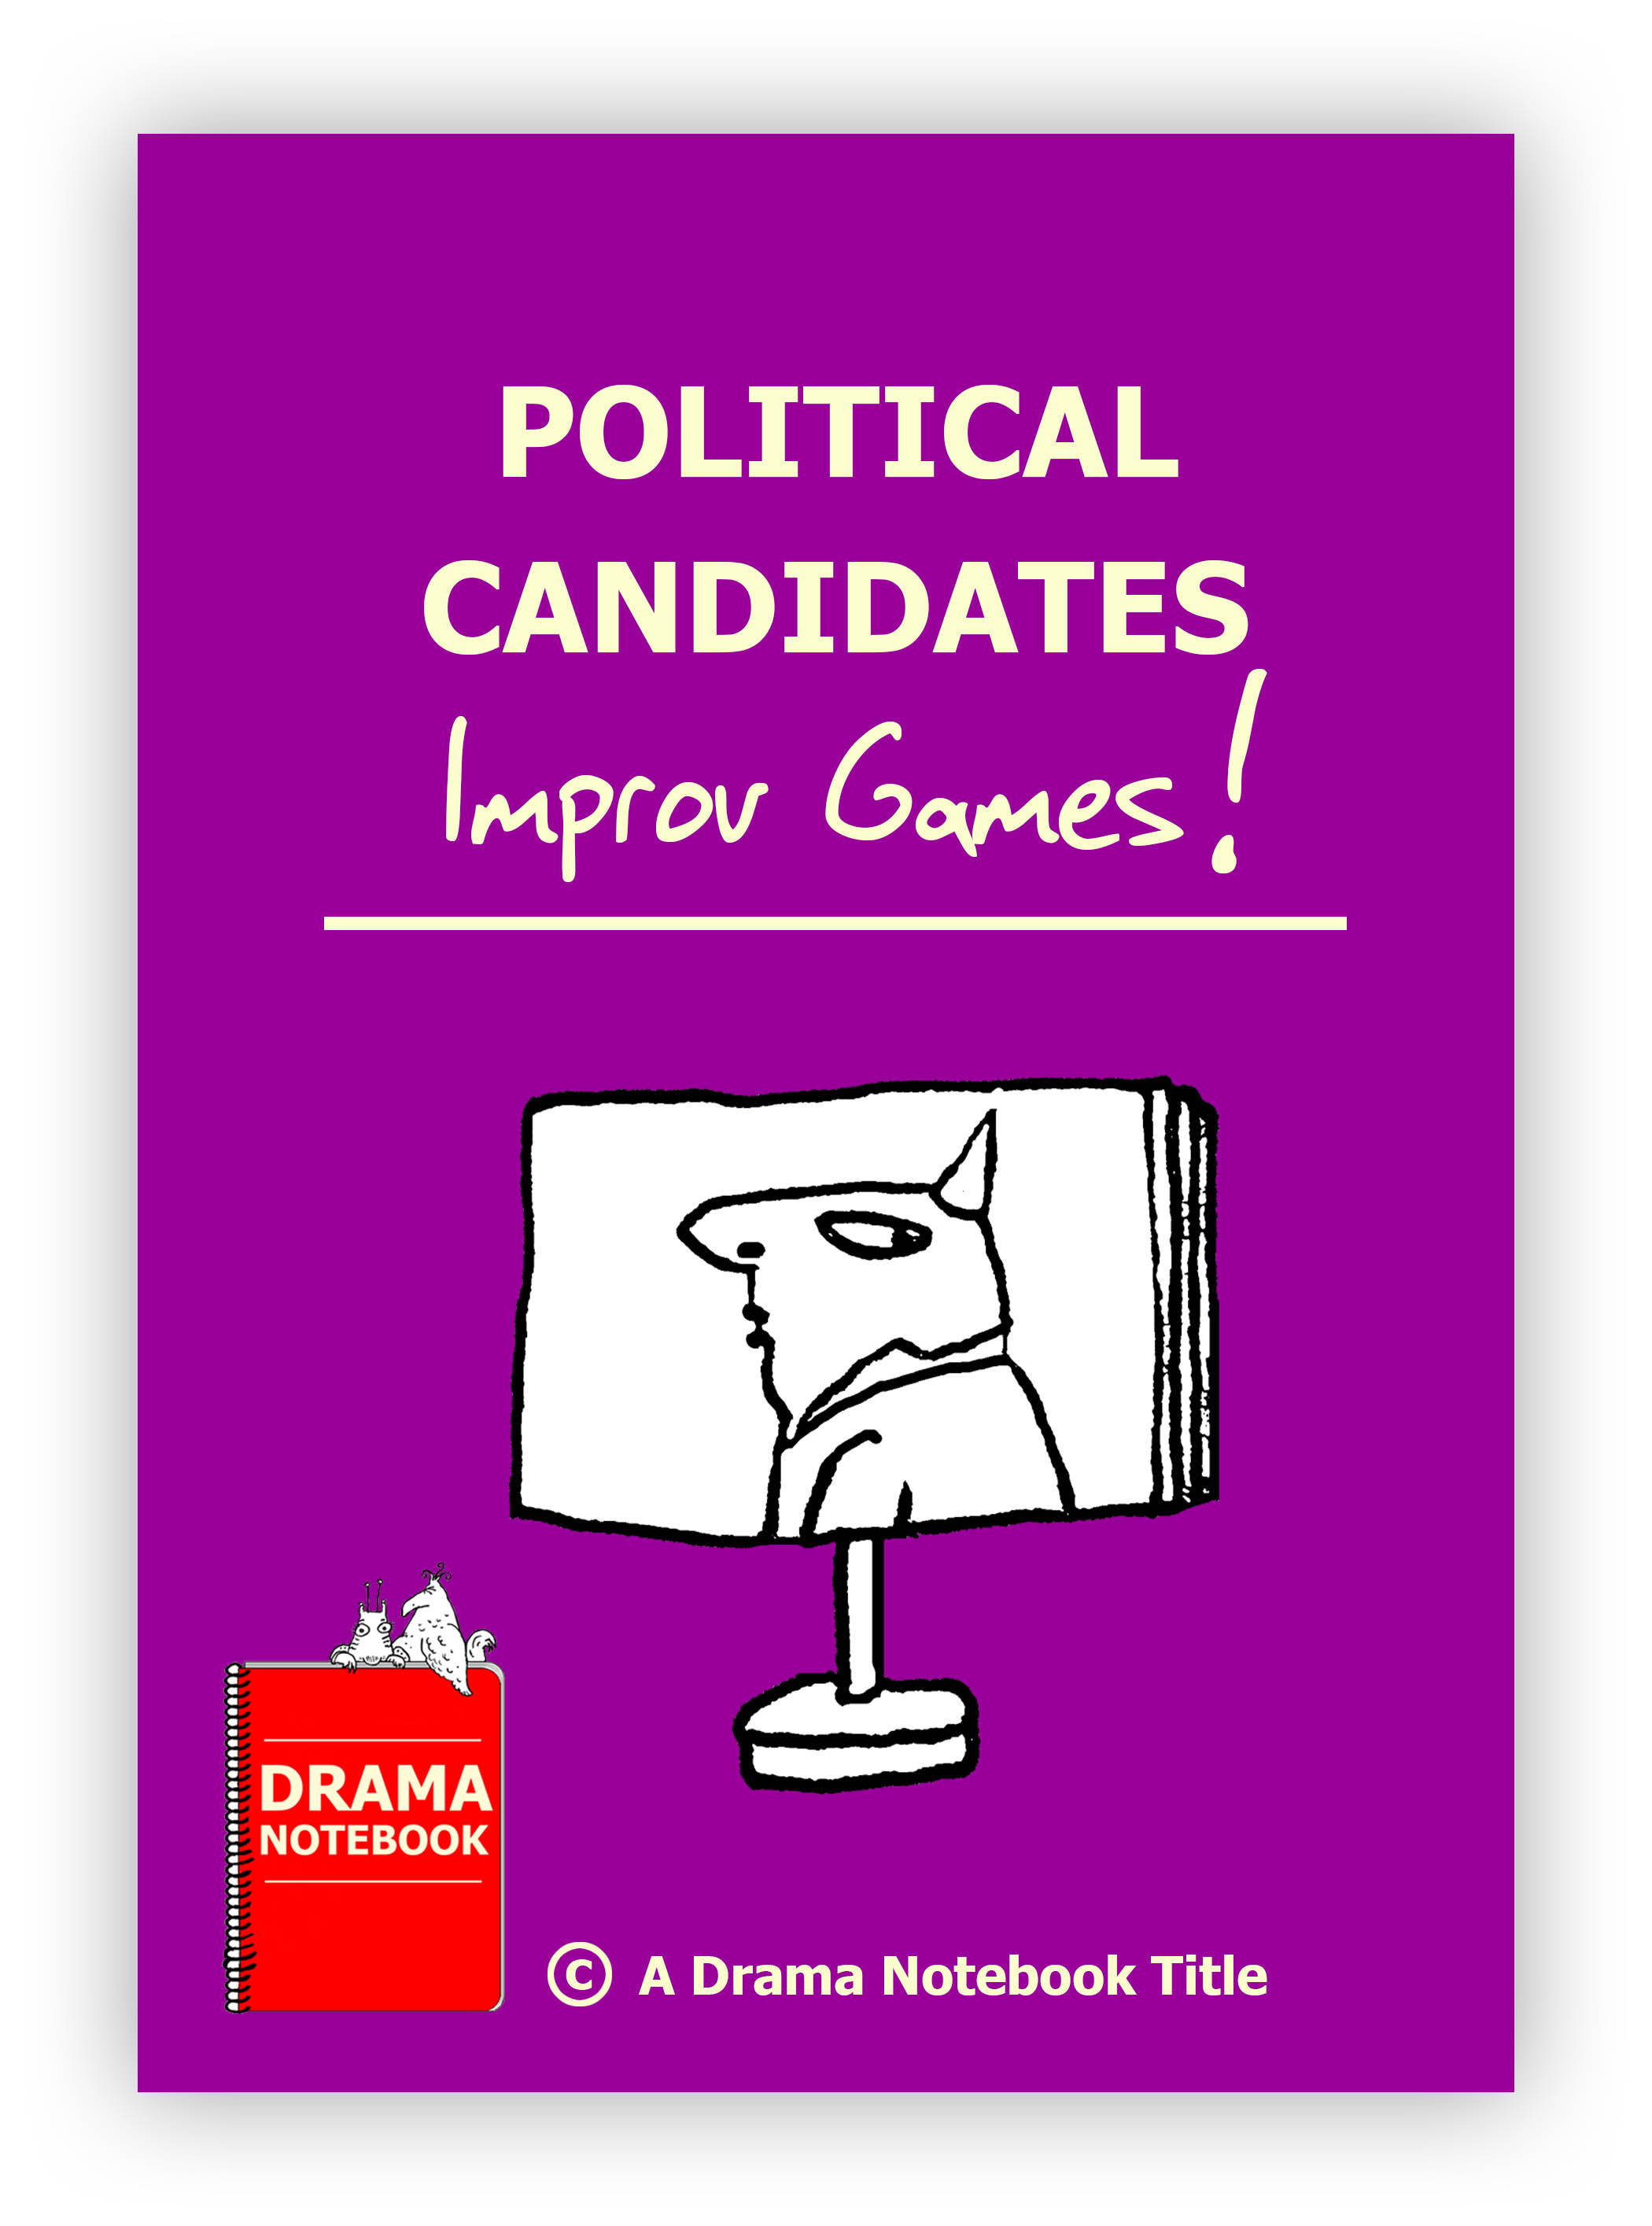 Political Candidate Improv Games